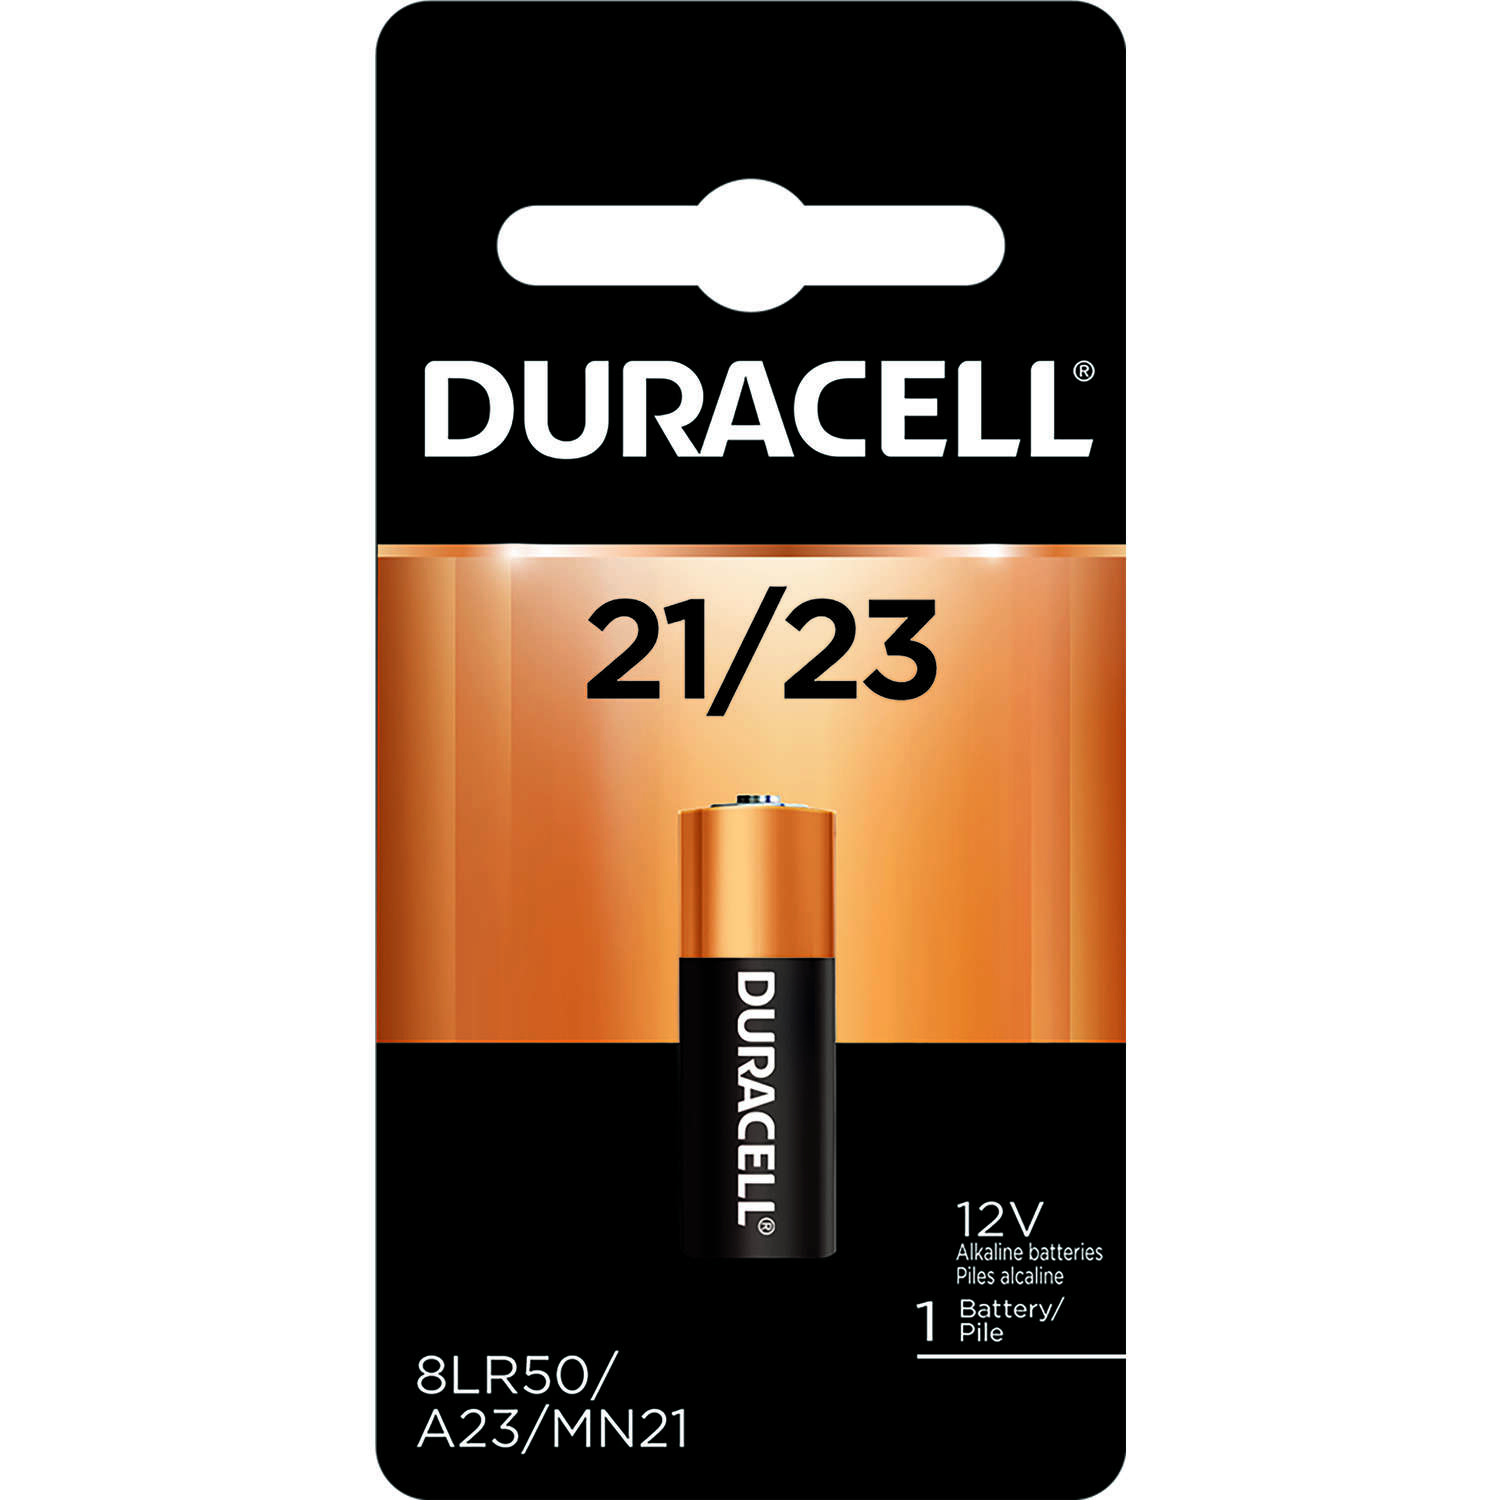 Duracell  Alkaline  12-Volt  12 volt Security Battery  21/23  1 pk